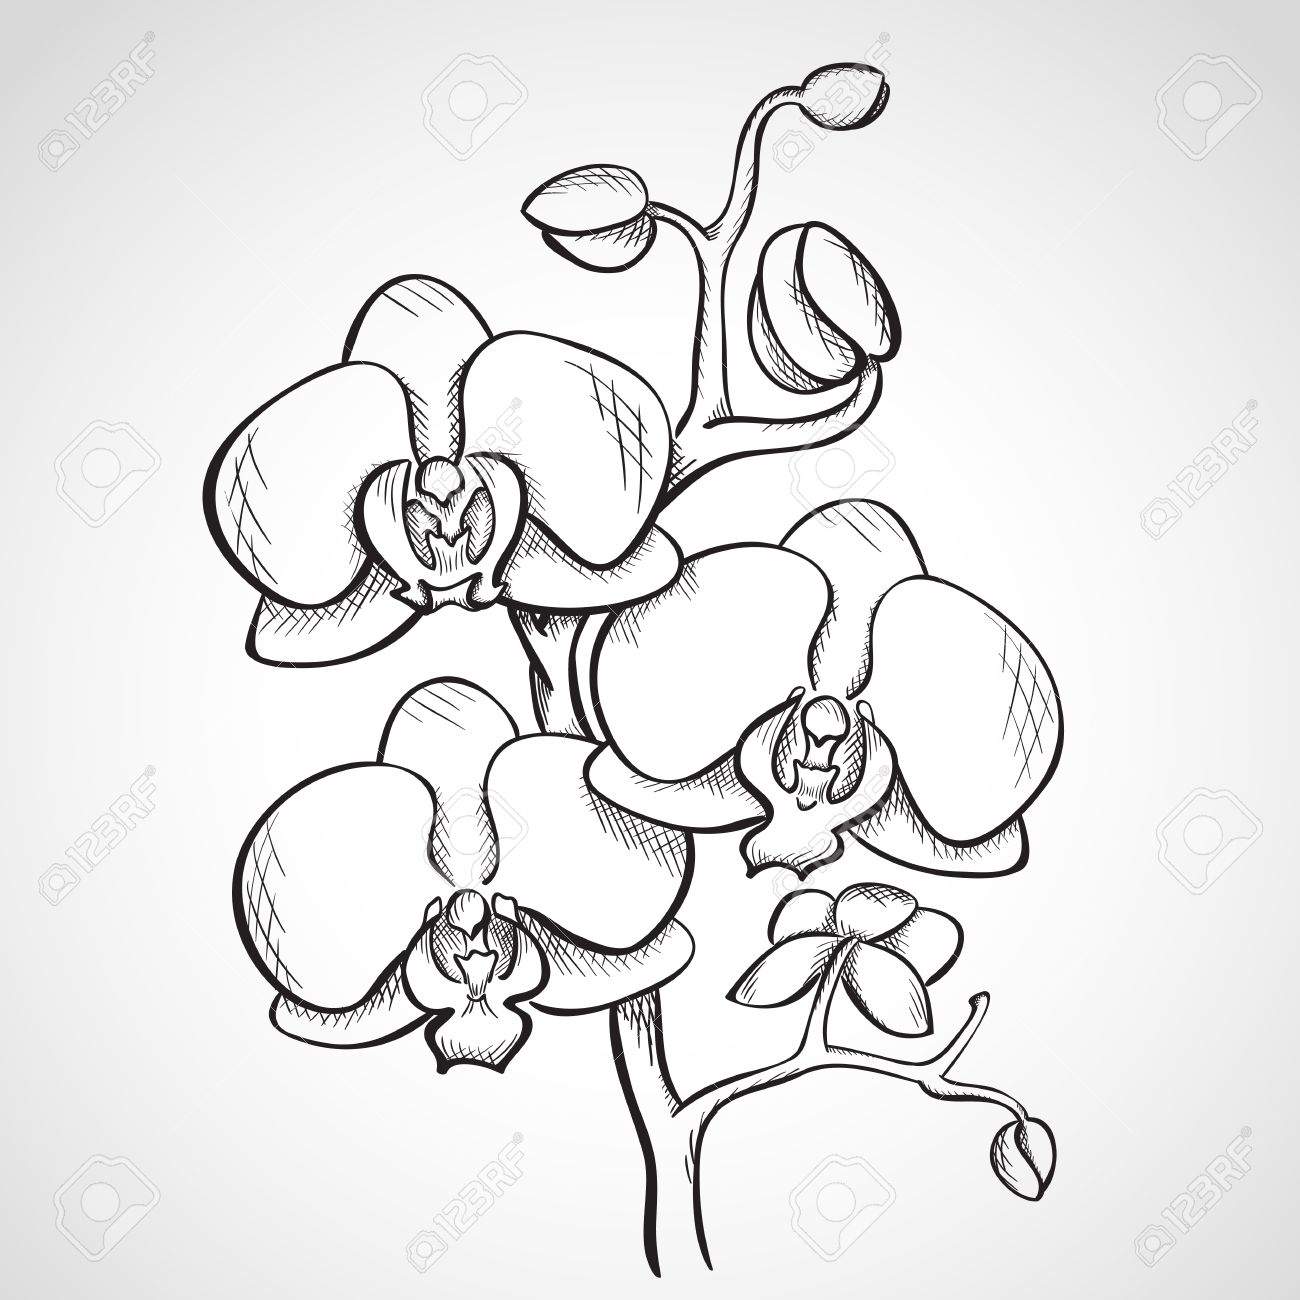 1300x1300 Gousicteco Orchid Drawing Outline Images